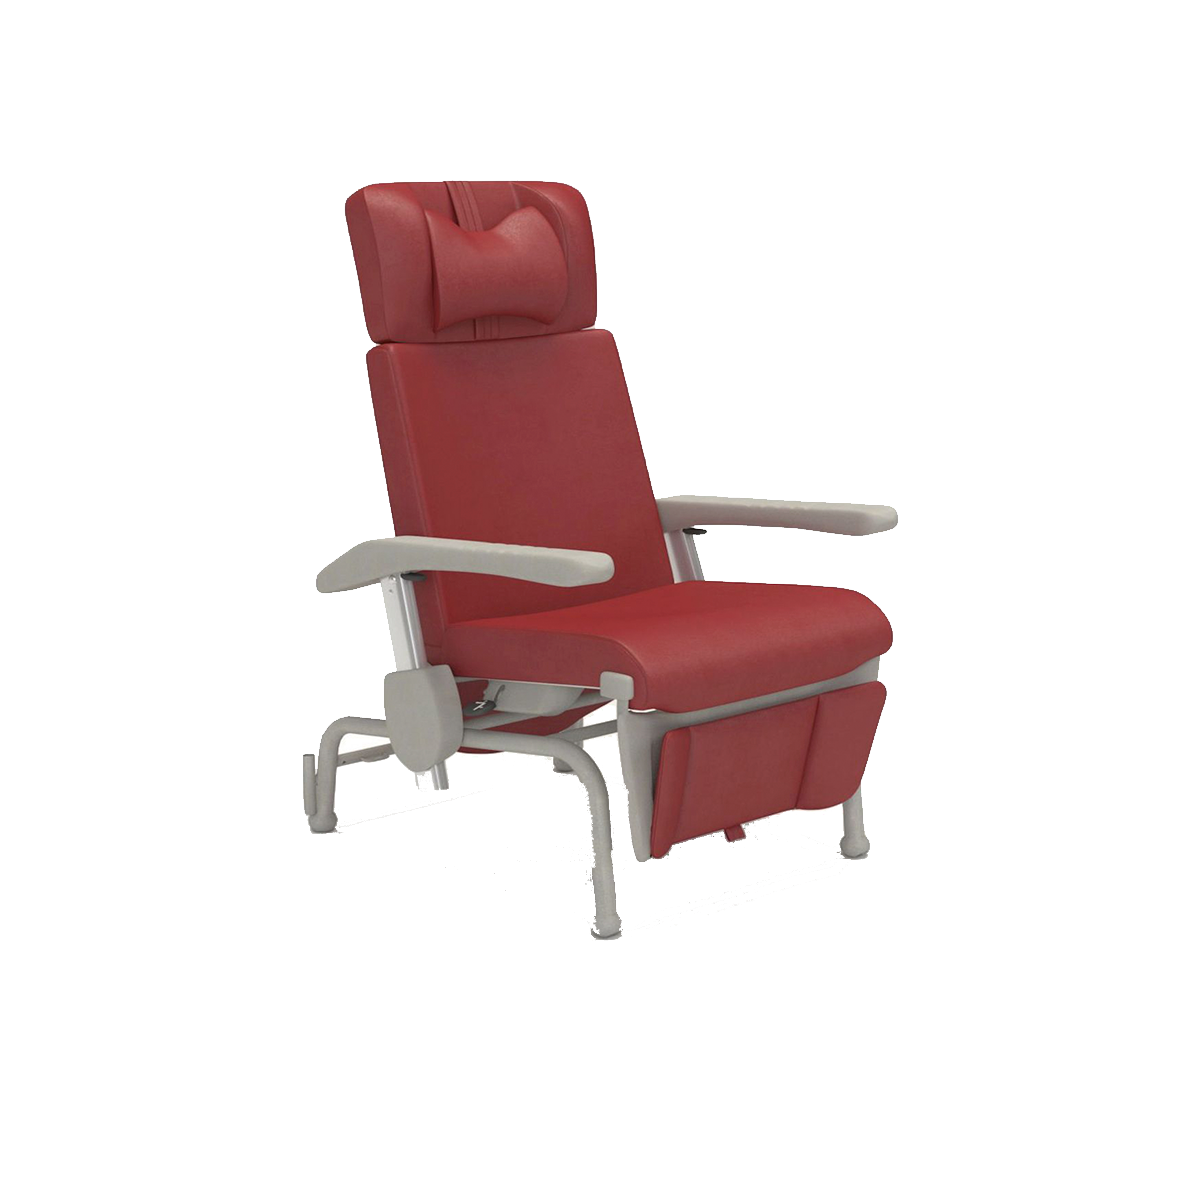 Fixed treatment chairs